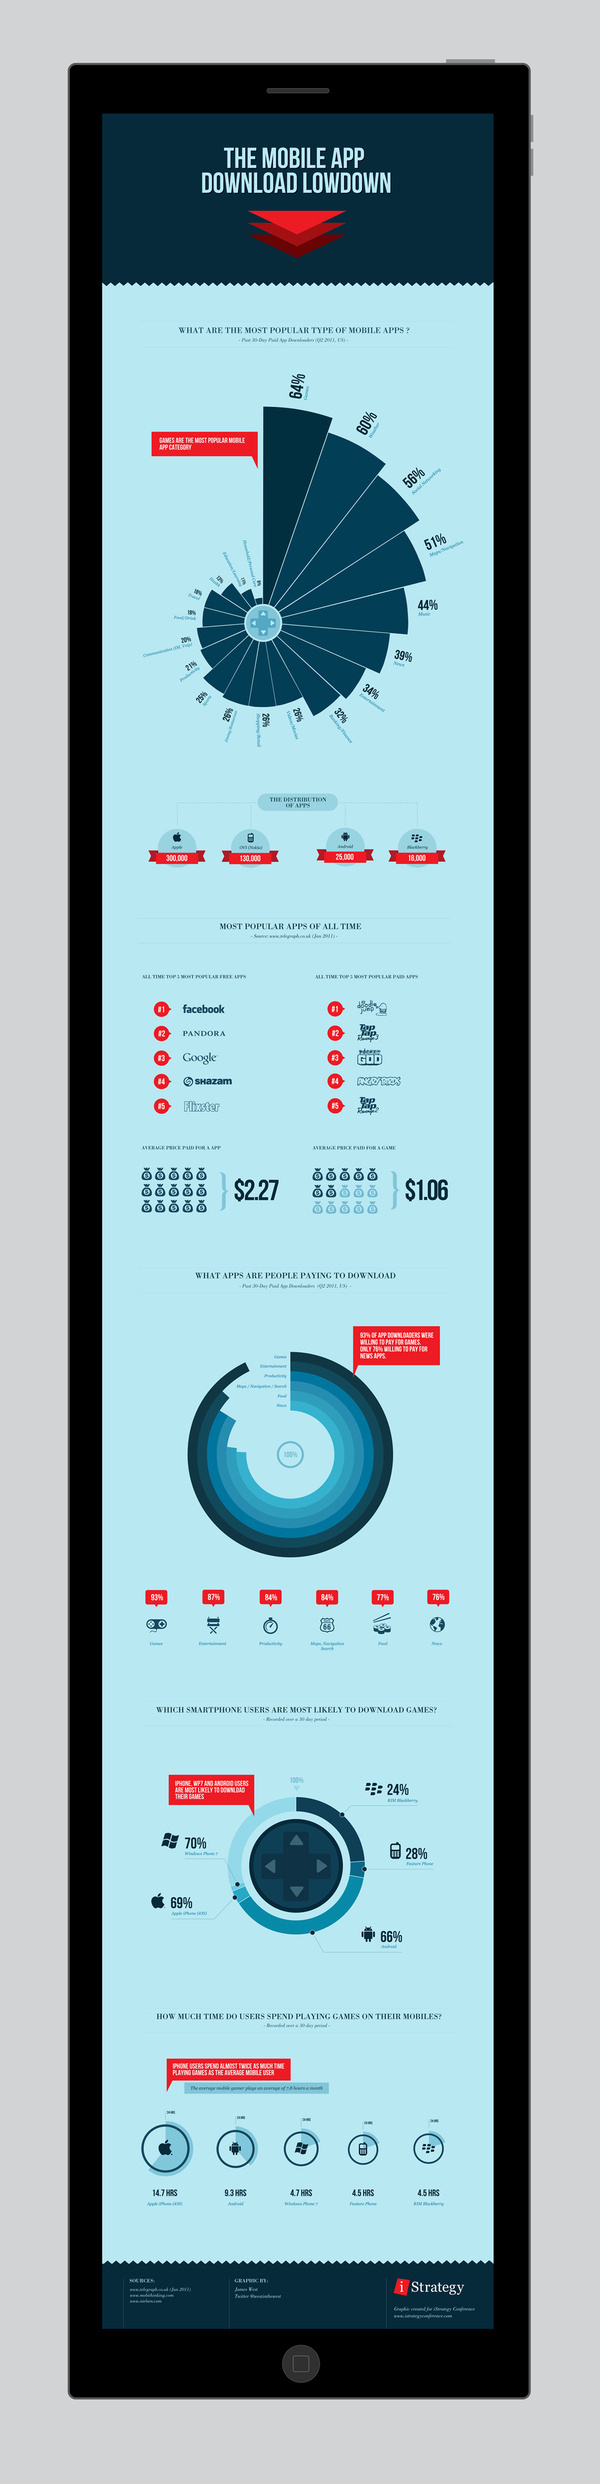 The mobile app download lowdown - INFOGRAPHIC #infographics #infographic #graphic #info #graphics